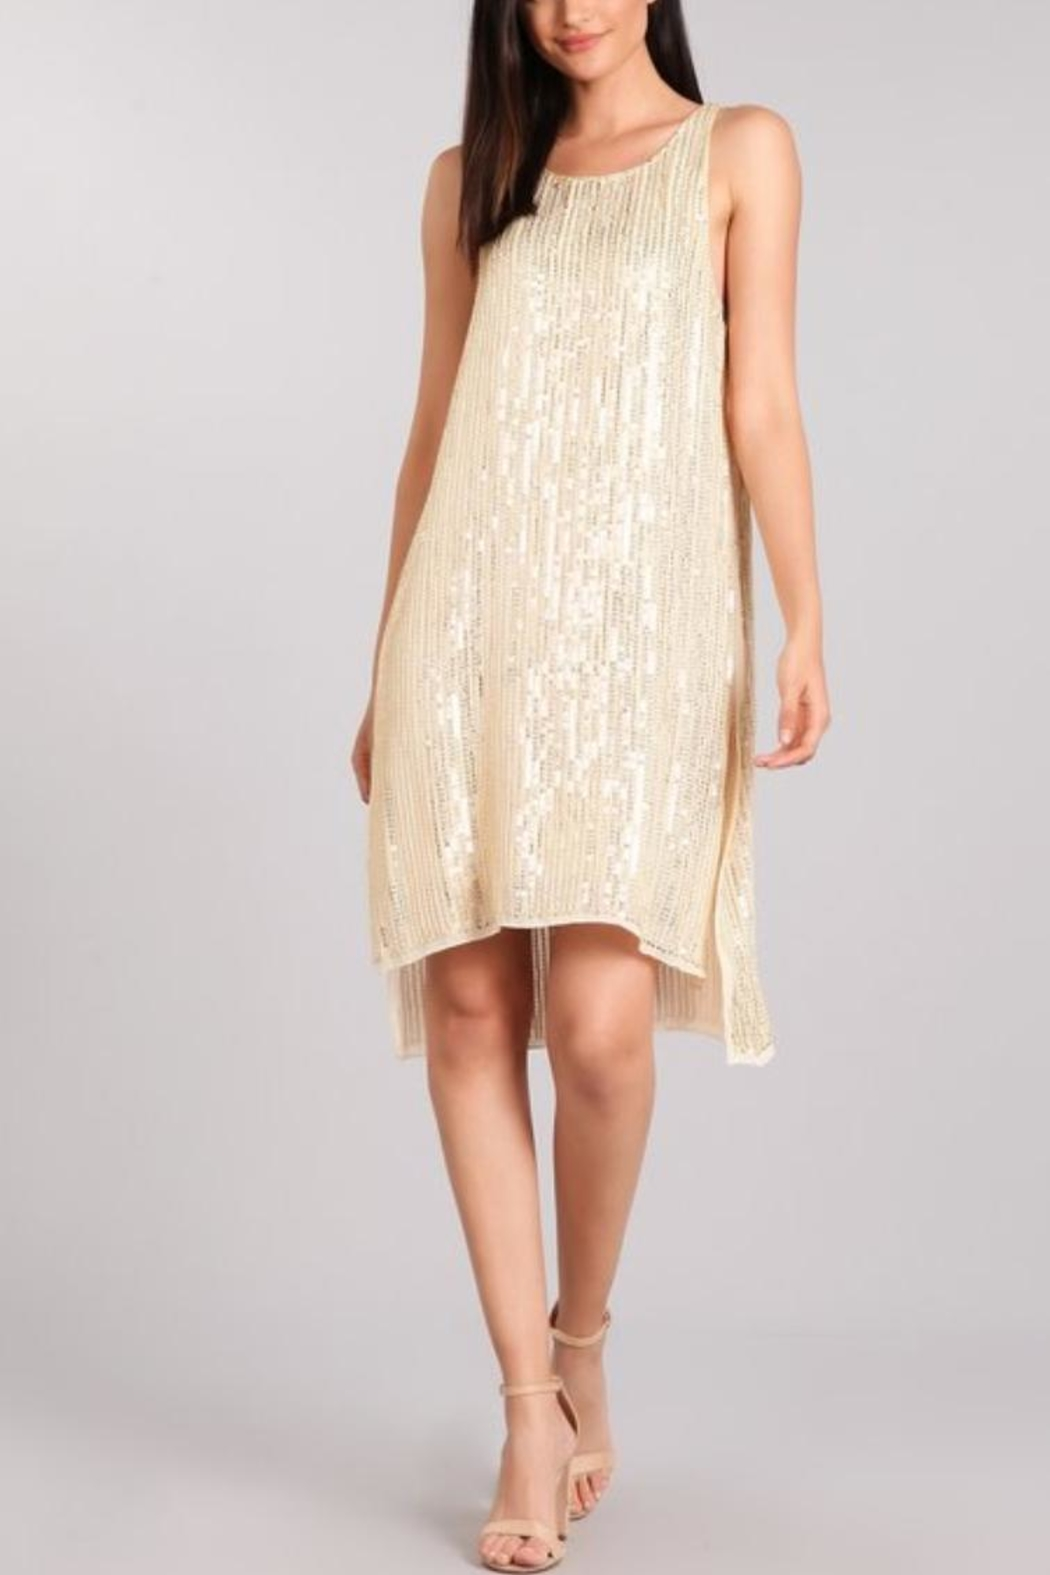 53e5d36d19 Verty Ivory Sequin Dress from Michigan by Javahs Fashion Cafe ...